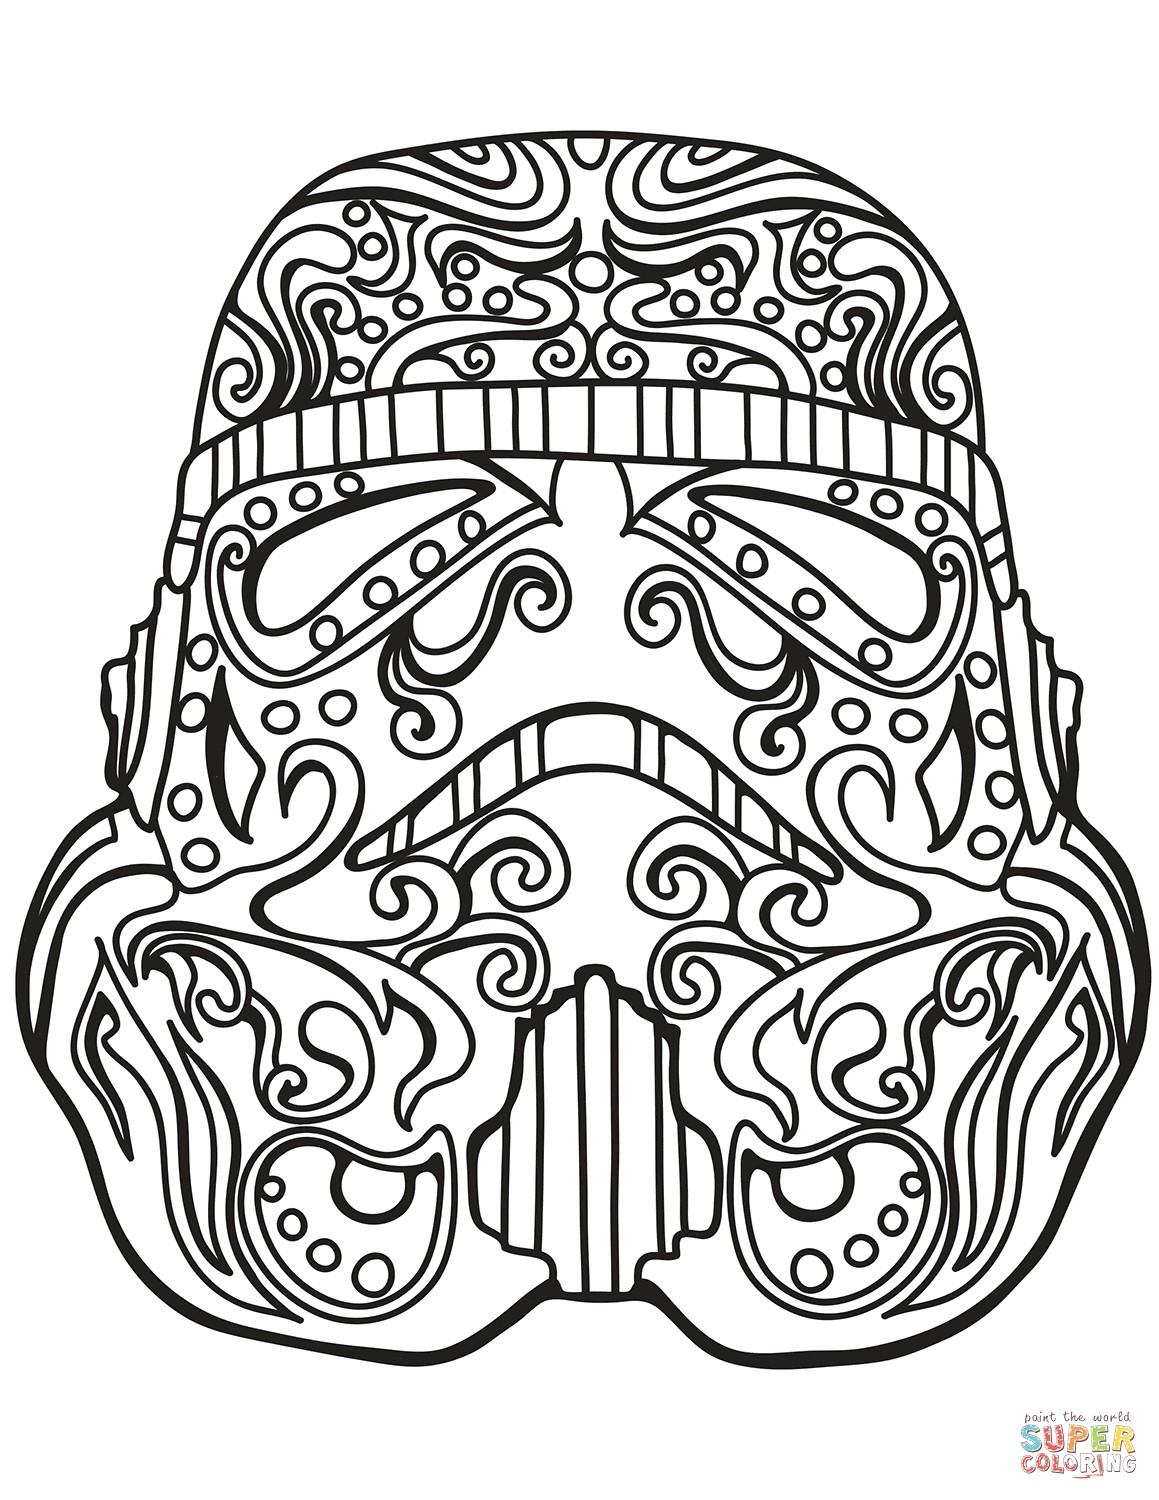 Skull Color Pages Star Wars Stormtrooper Sugar Skull Coloring Page Pages Telematik